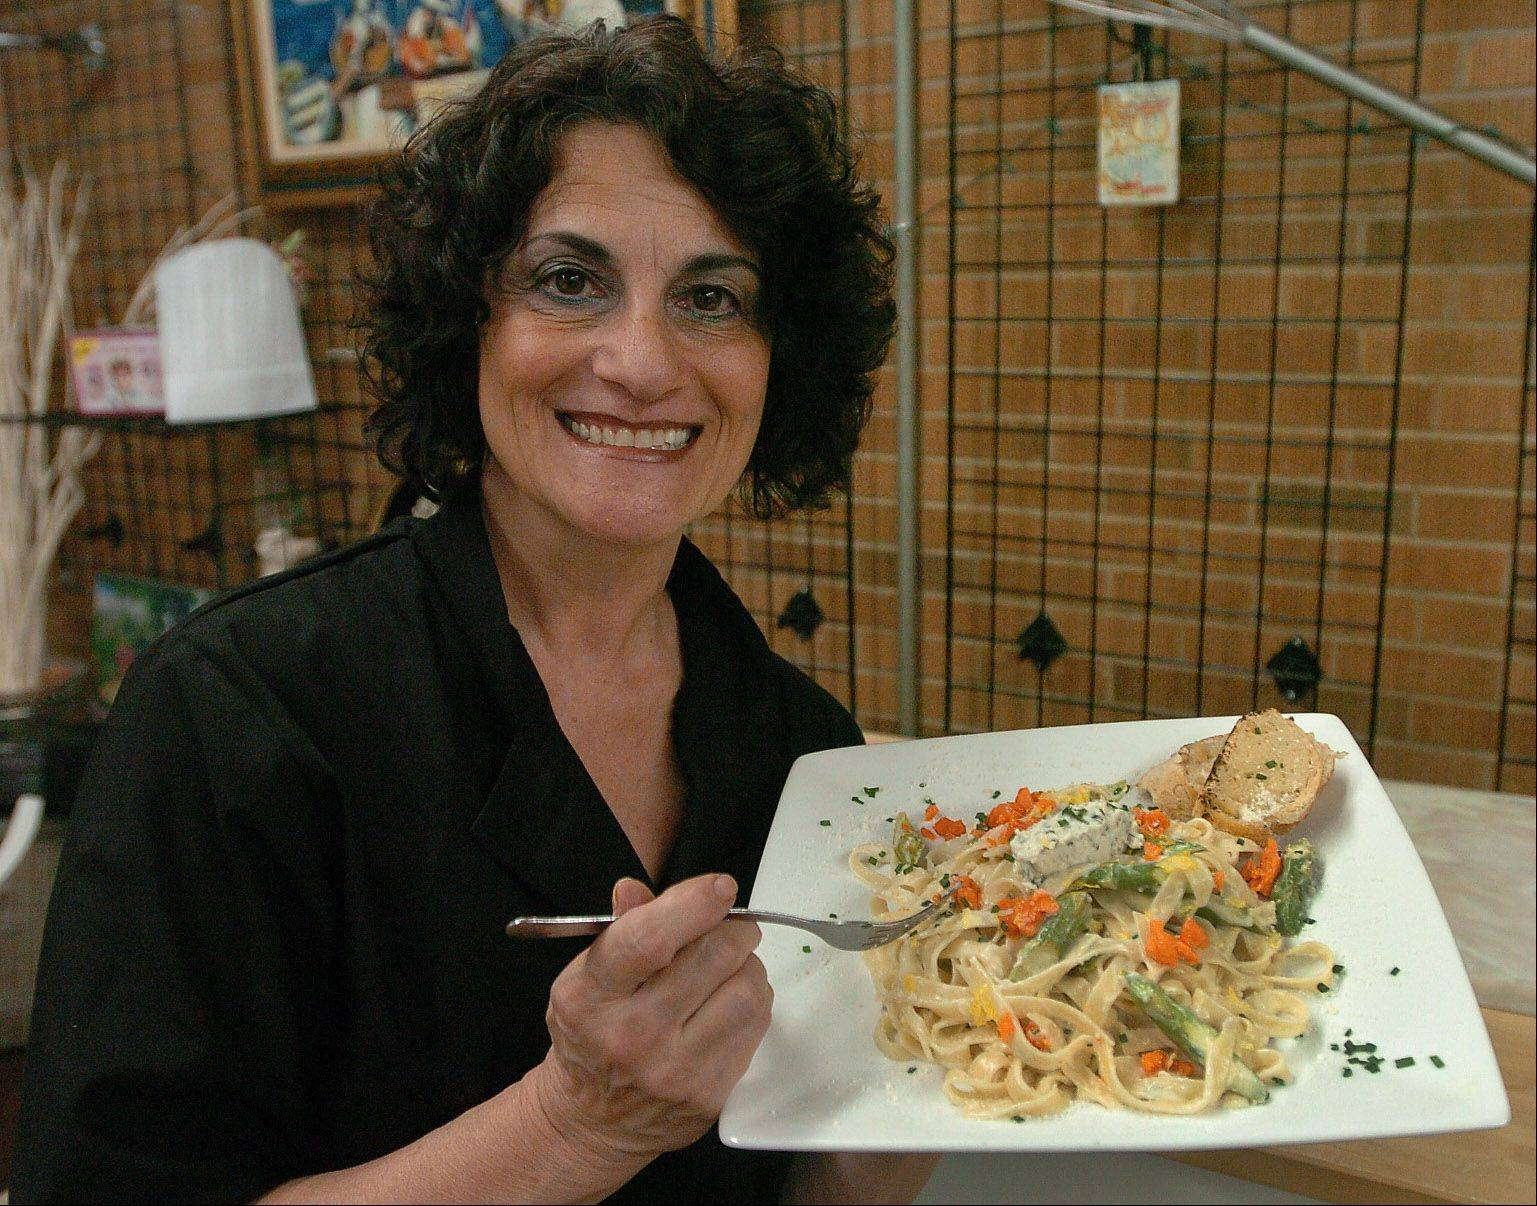 Chef du Jour: Arlington Heights chef teaches, caters, cooks for the community